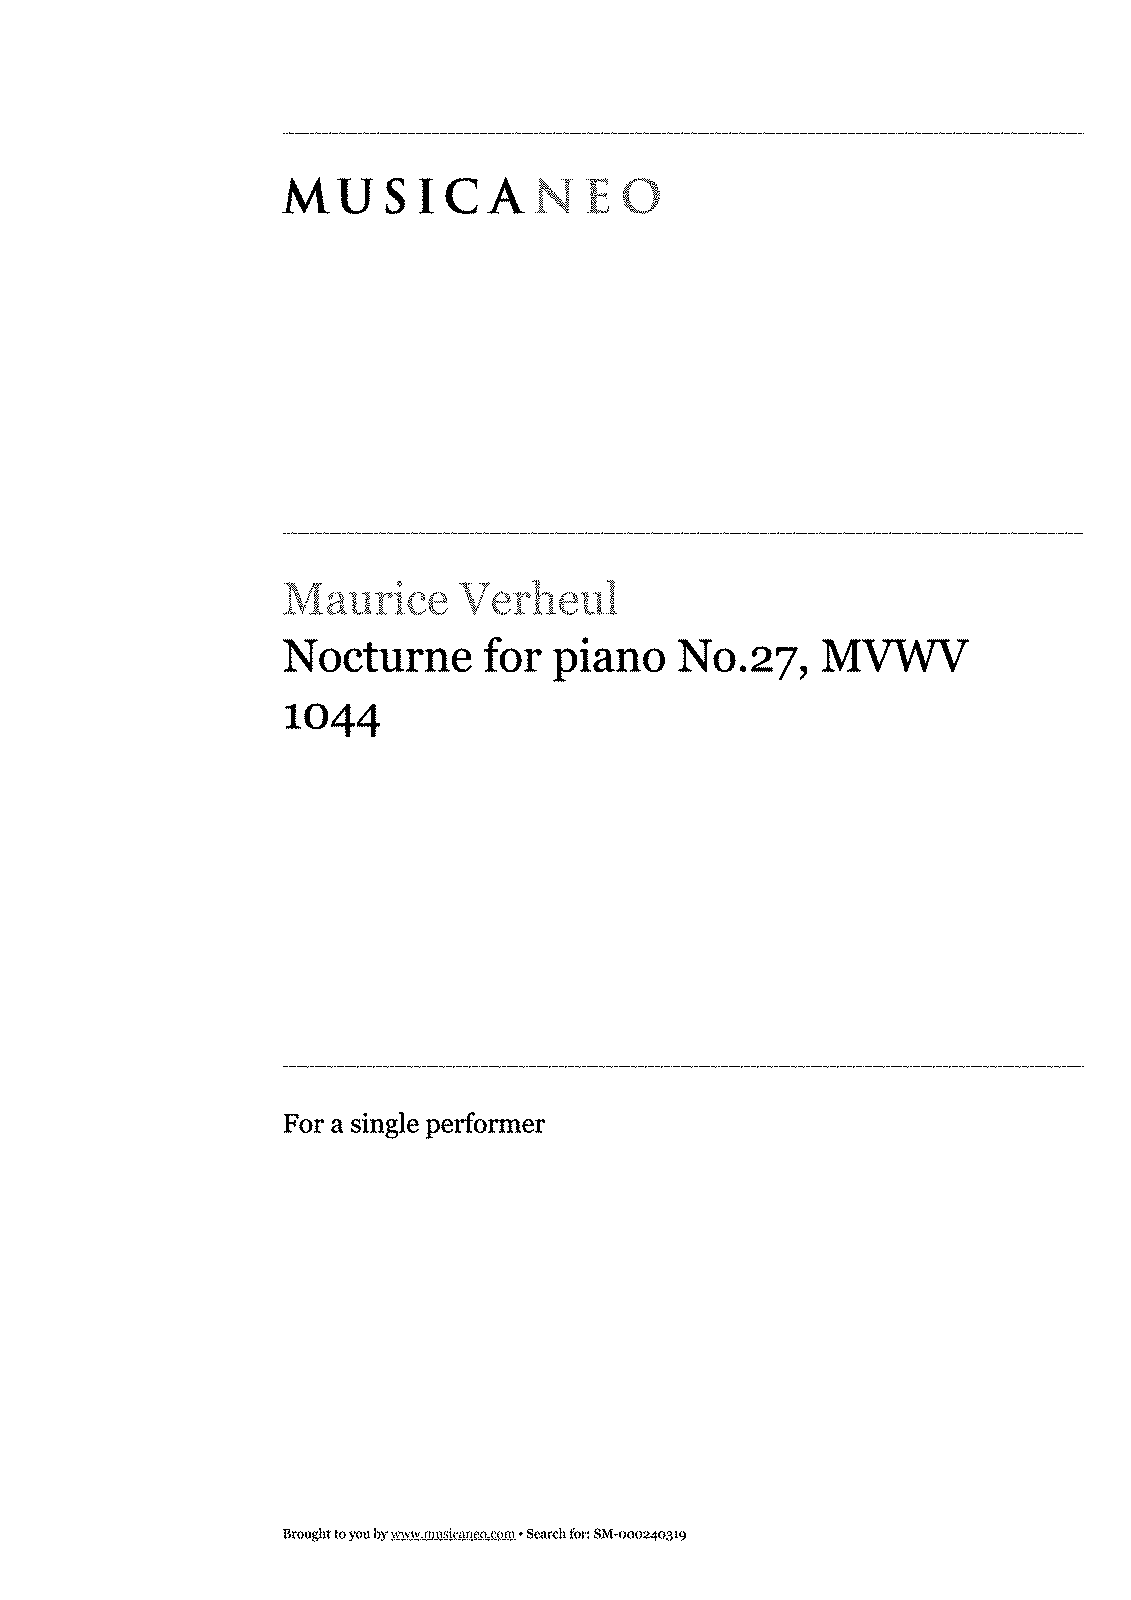 PMLP717122-nocturne for piano no 27 mvwv 1044.pdf